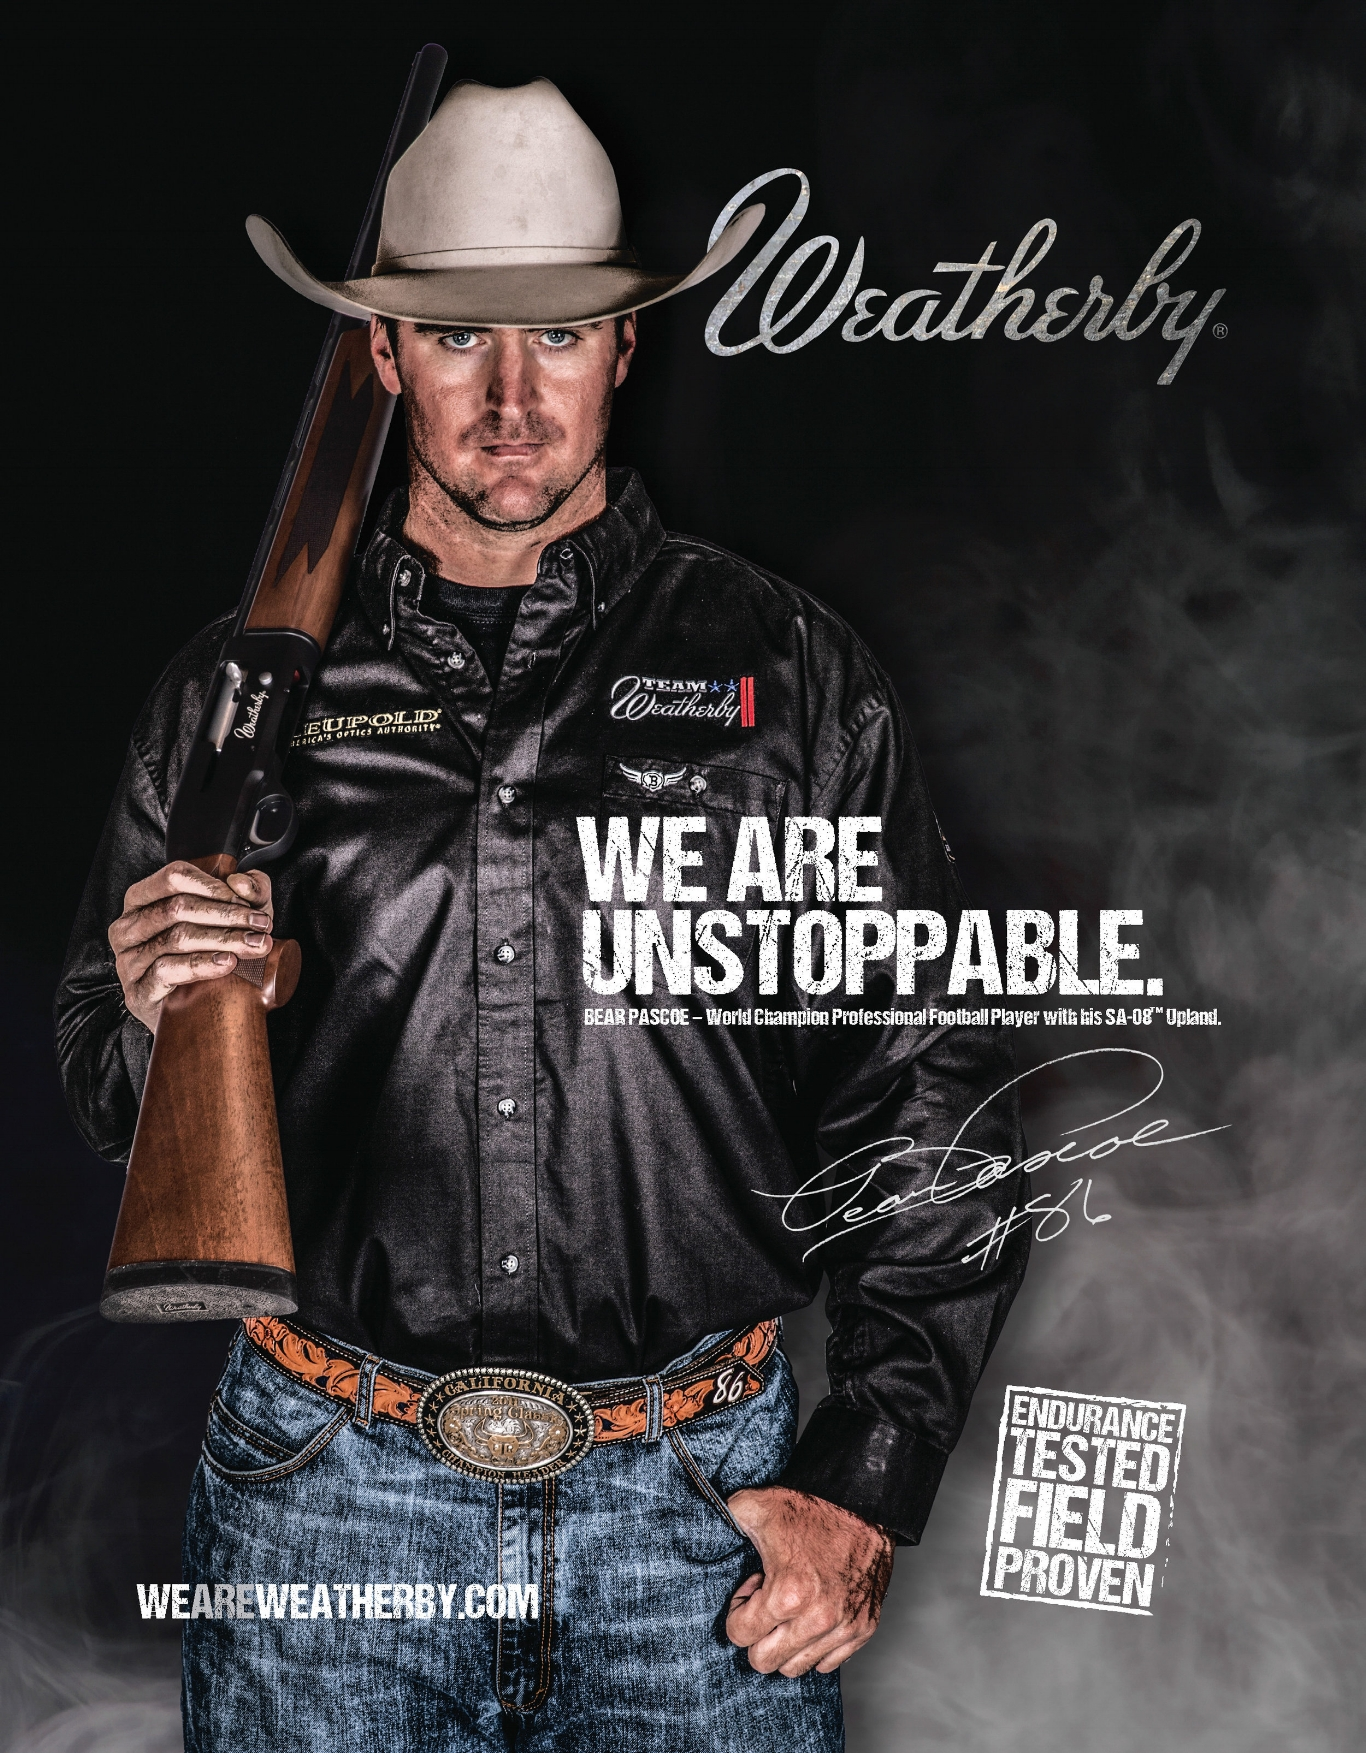 2014 Weatherby Ad Campaign